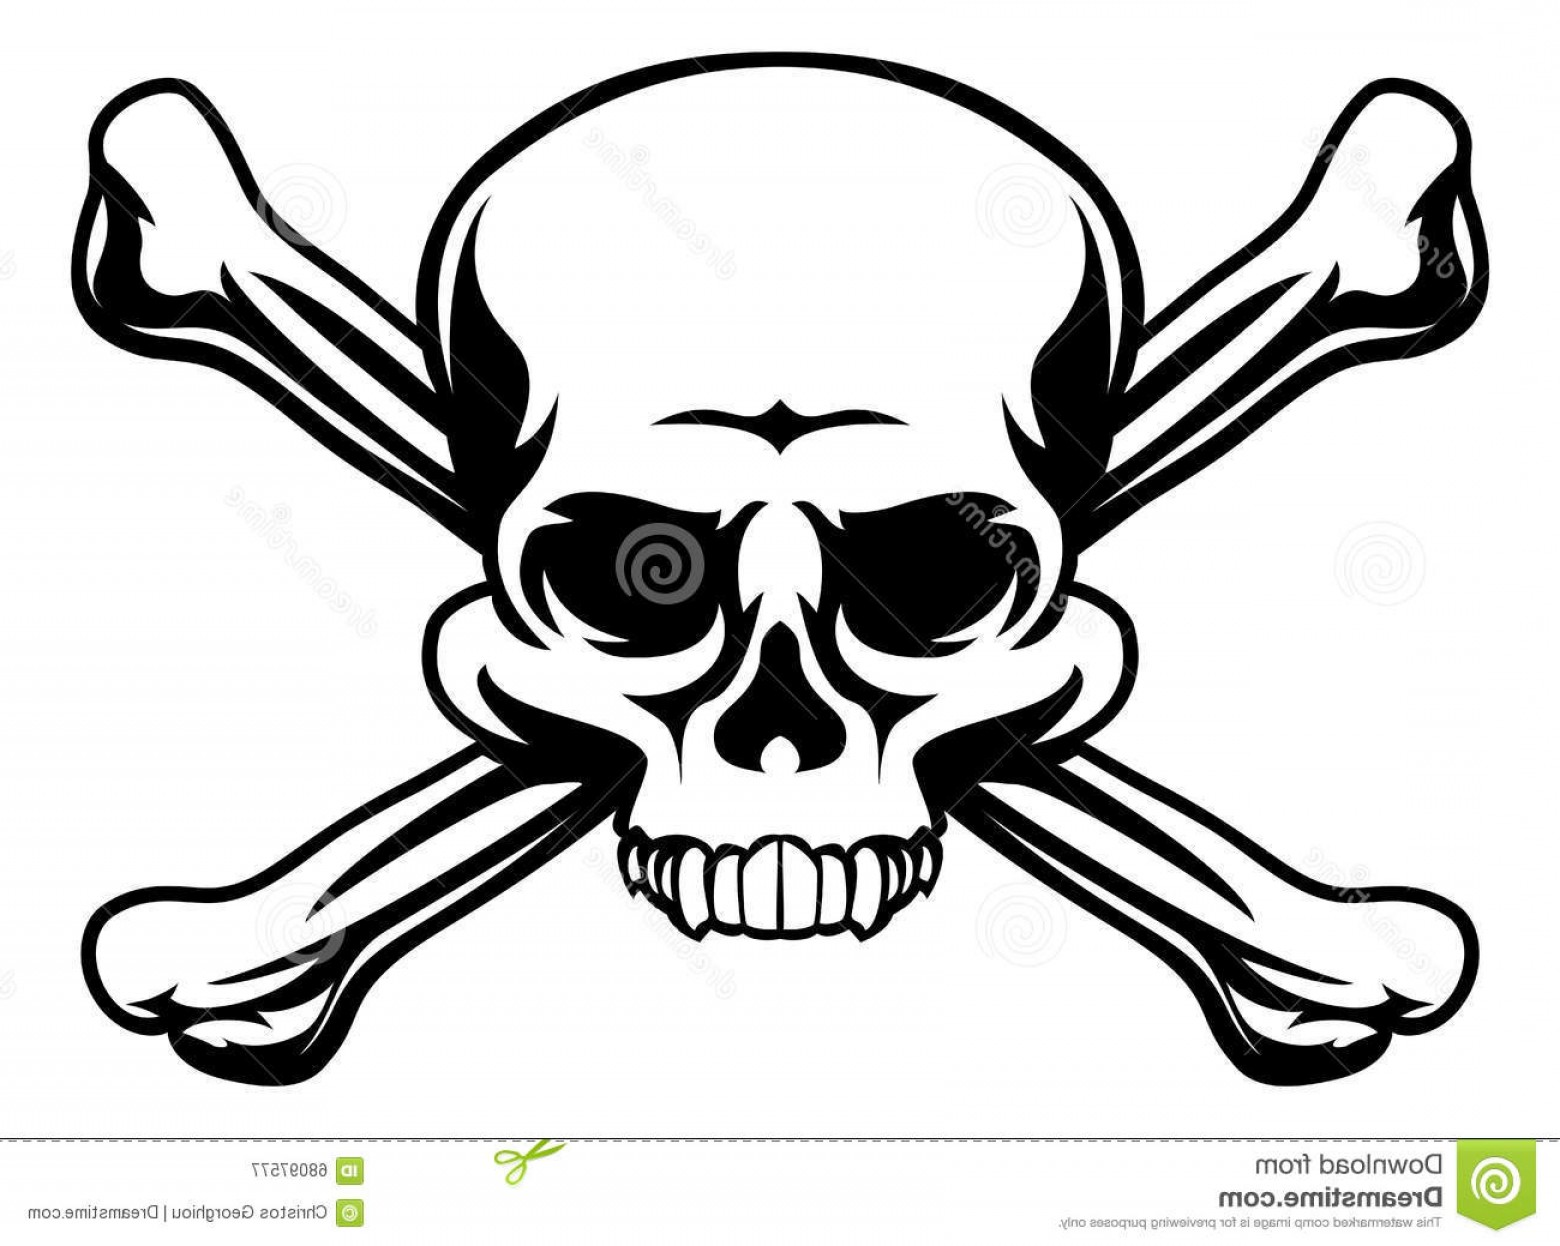 Skull ND Crossbones Vector: Stock Illustration Skull Crossbones Symbol Icon Illustration Like Pirates Jolly Roger Sign Image